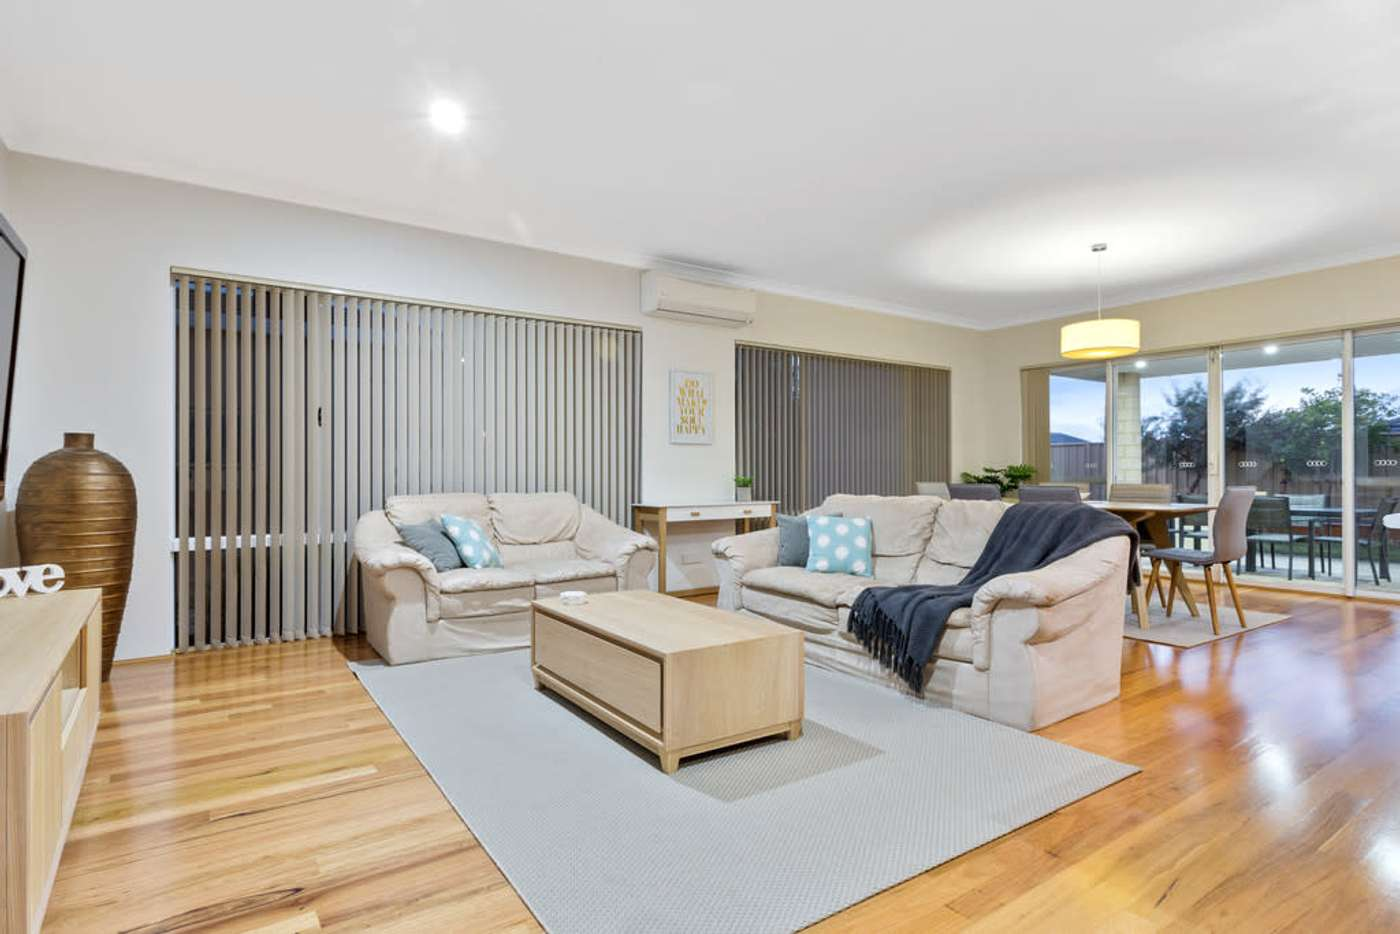 Fifth view of Homely house listing, 58 Peregrine Circle, Beeliar WA 6164